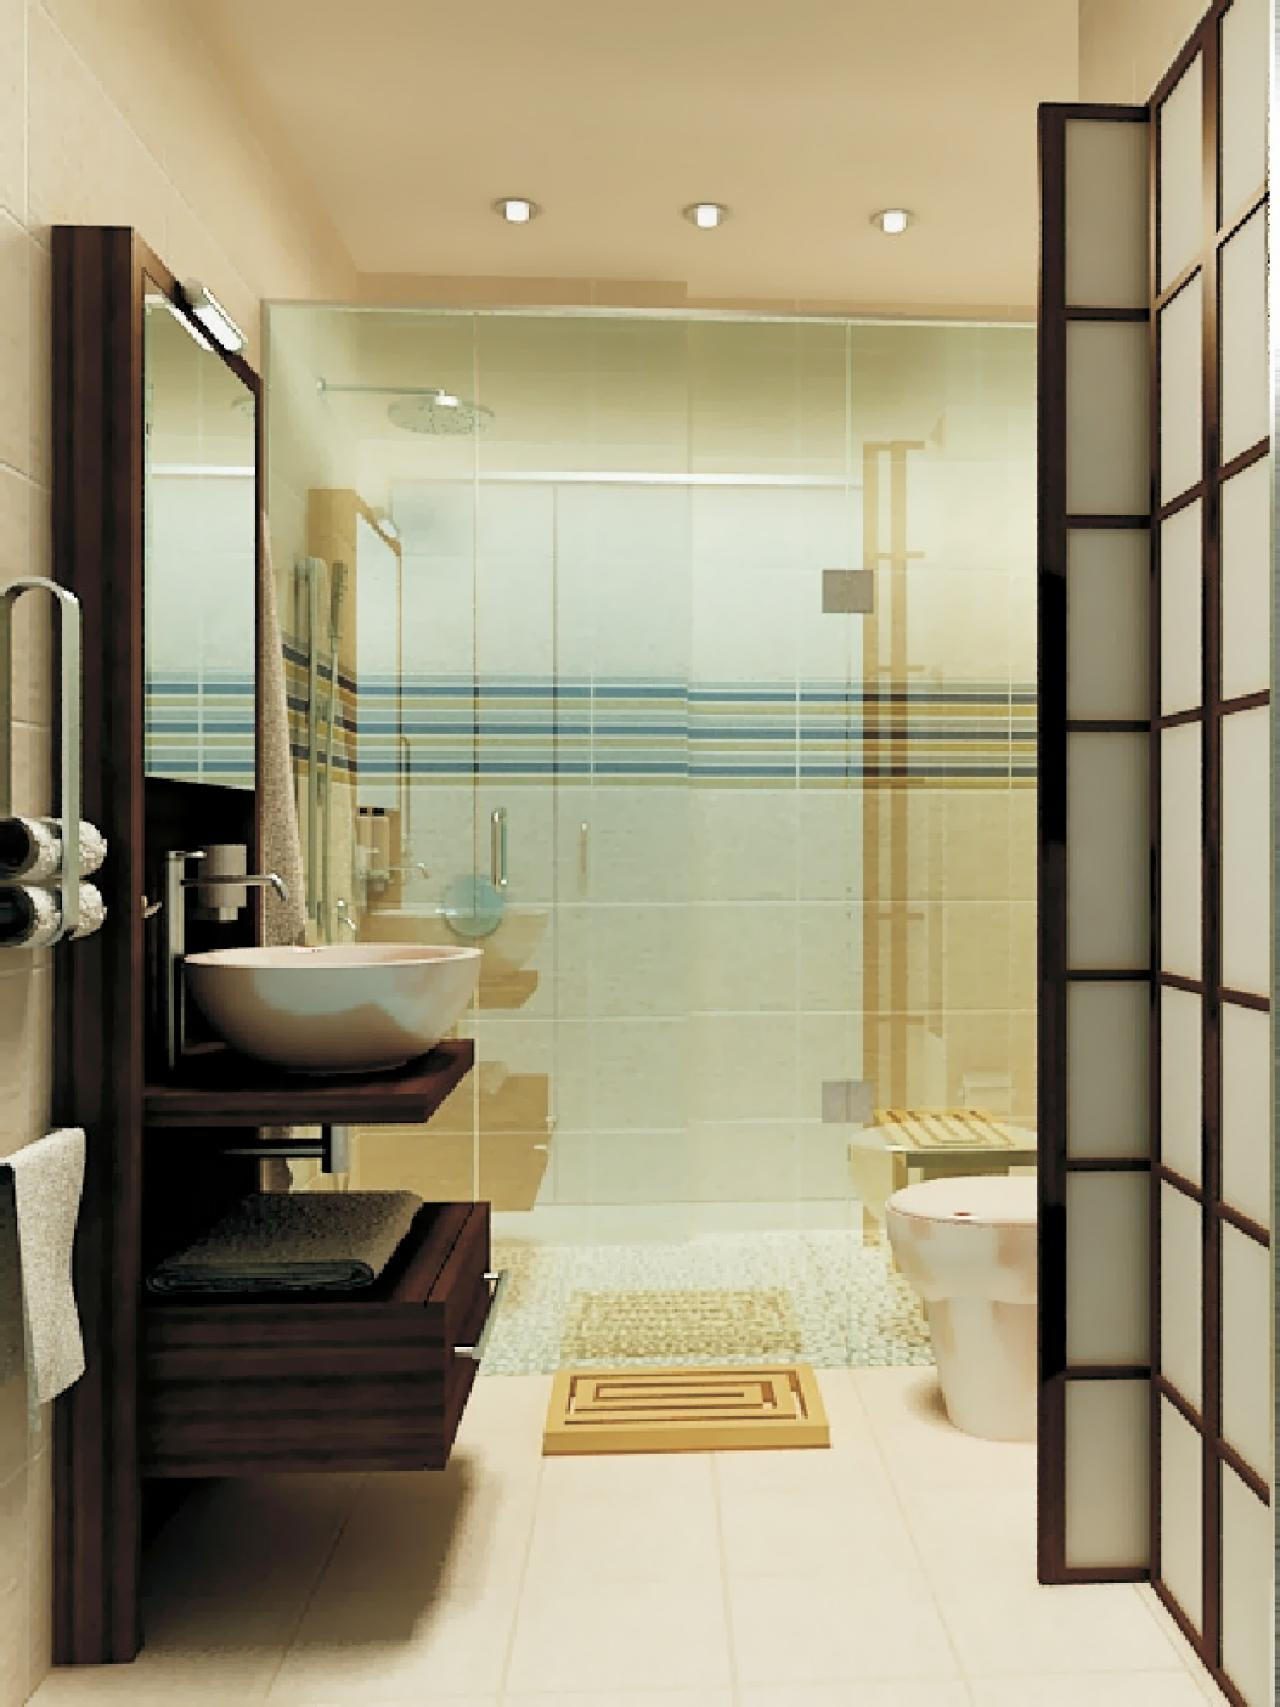 spa like bathroom designs, black and white bathroom designs, spa feel bathroom designs, on zen like bathroom designs.html